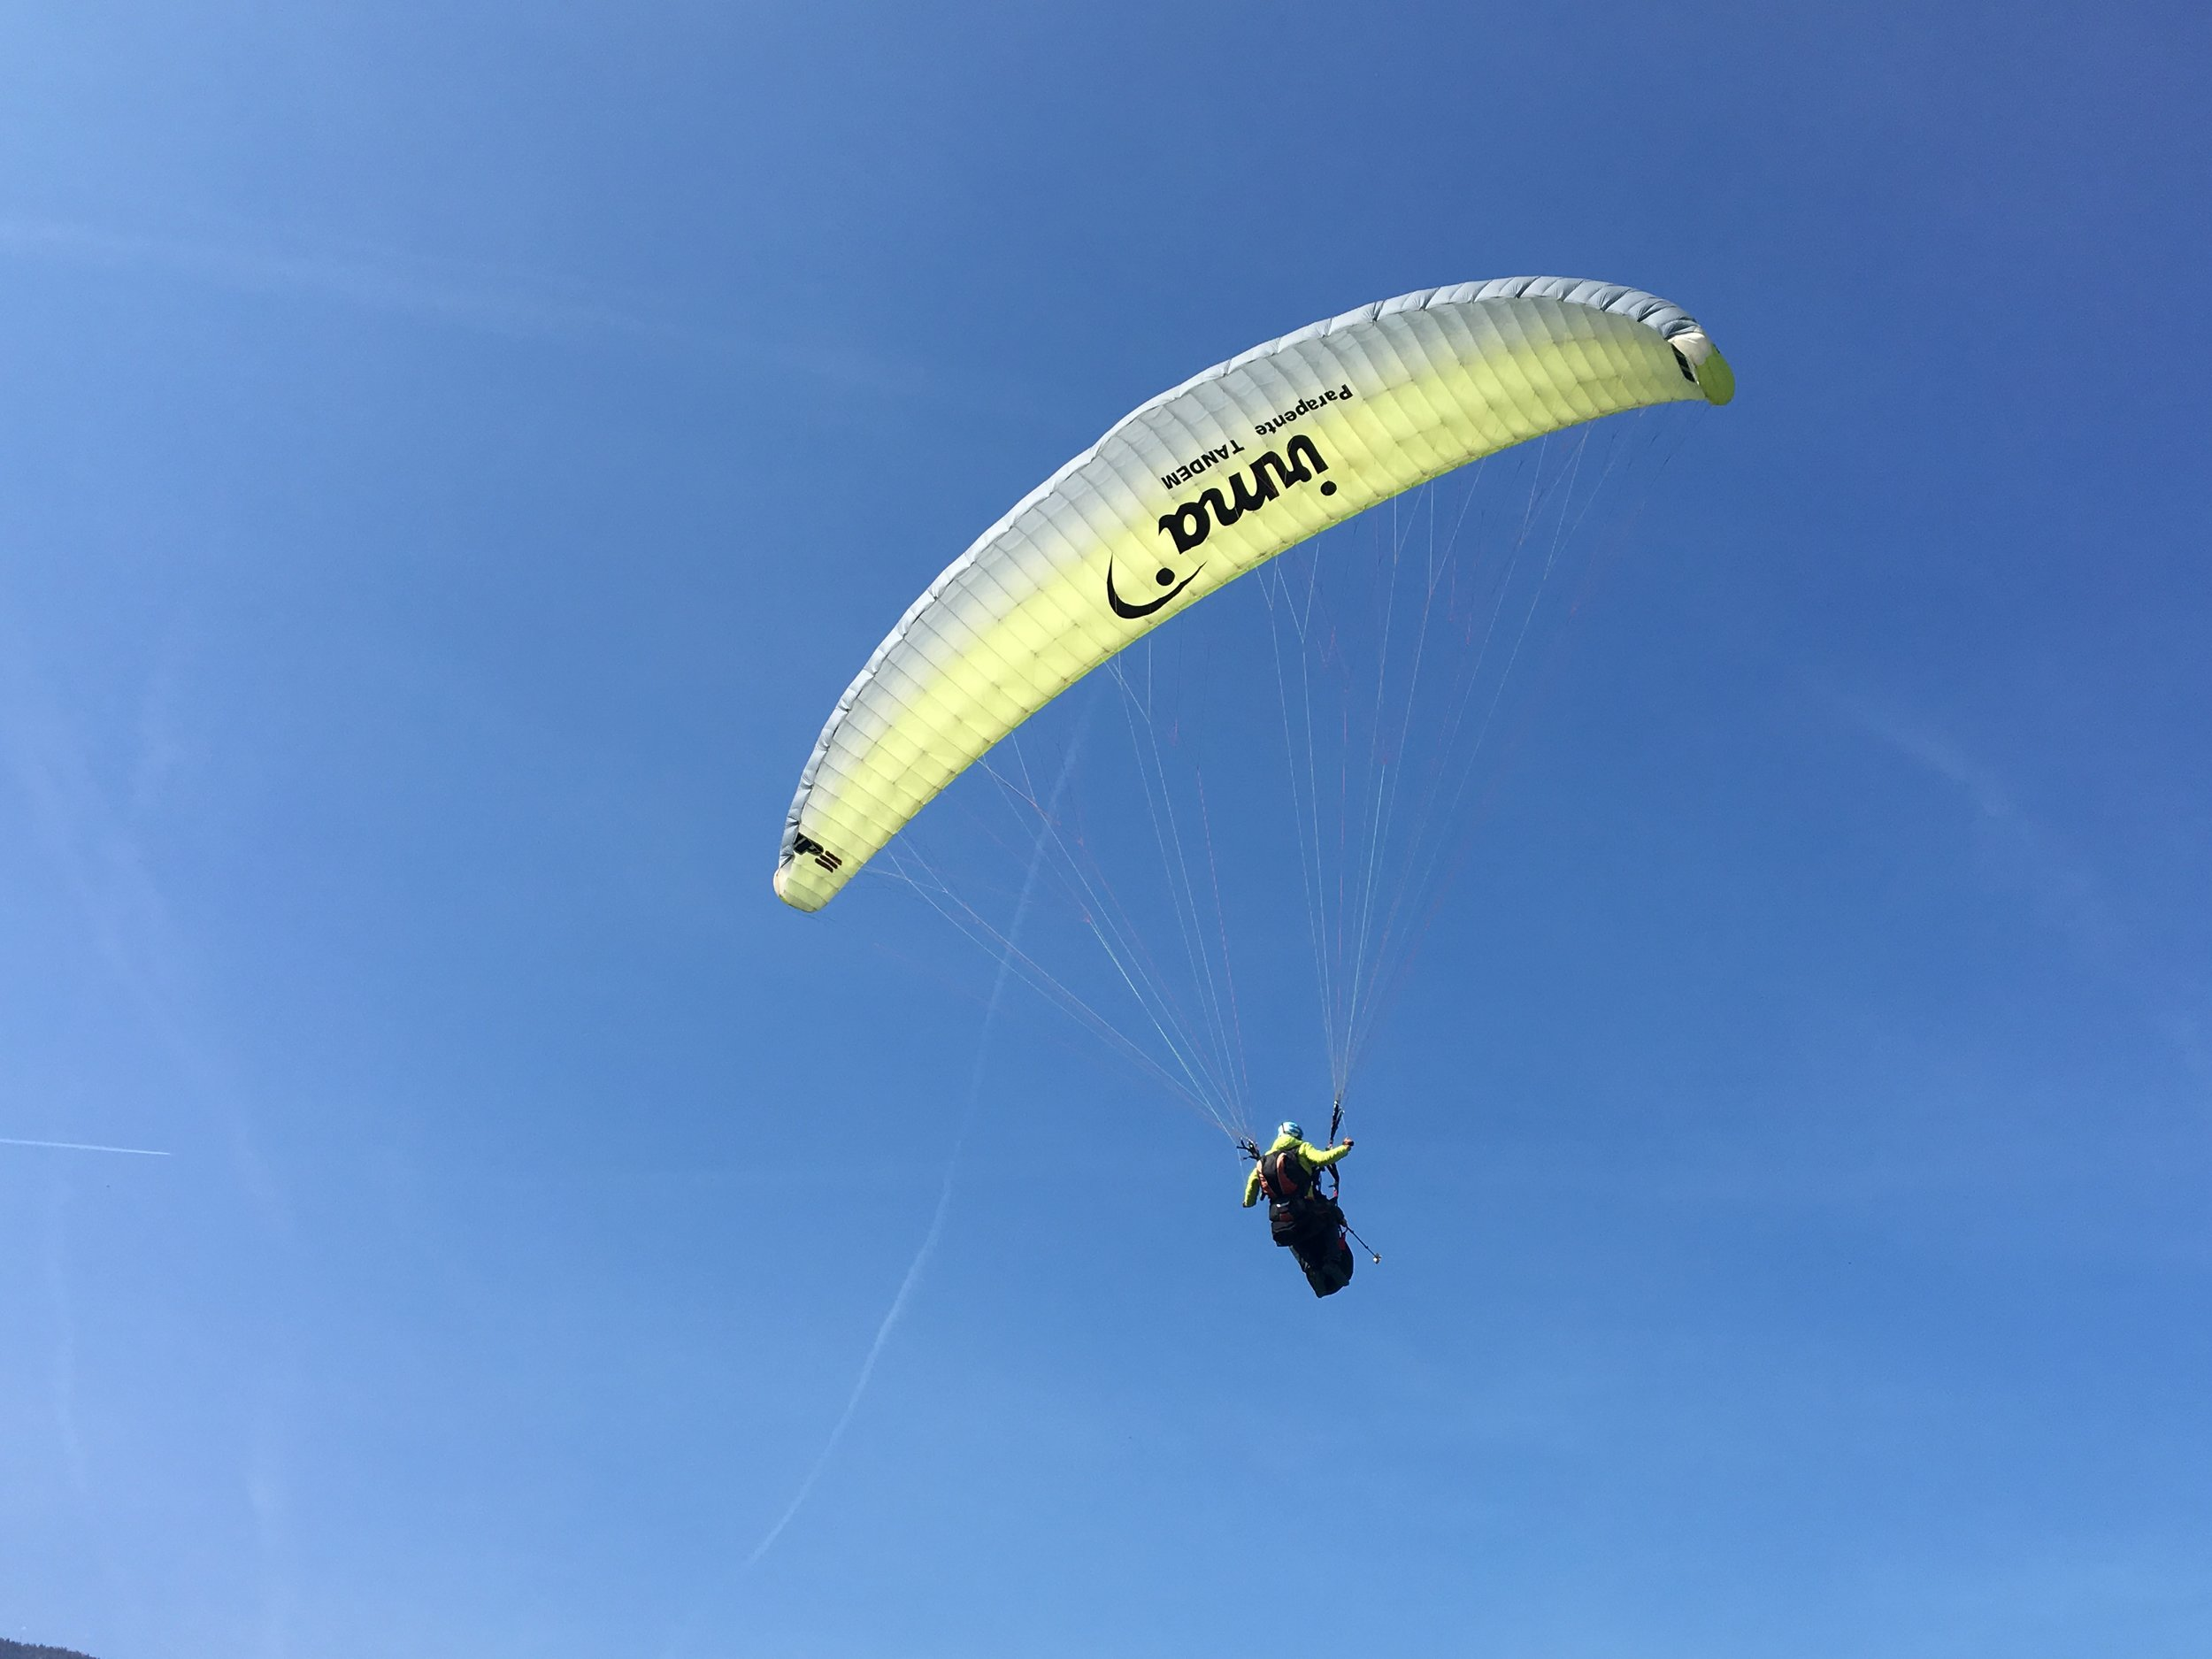 Landing at the Paraport